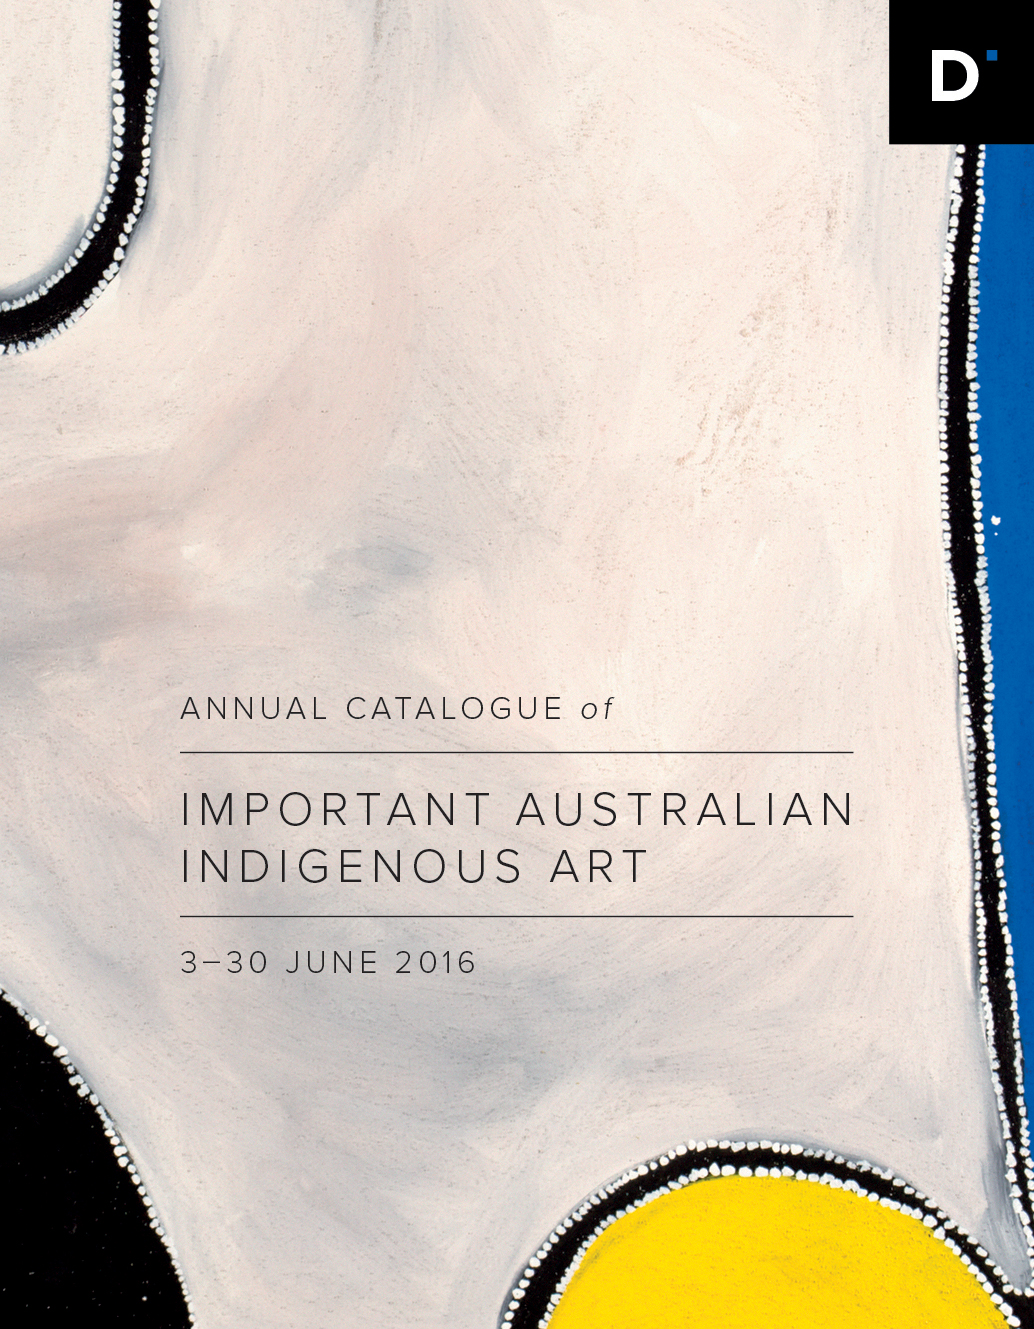 Australian Indigenous art exhibition 2016